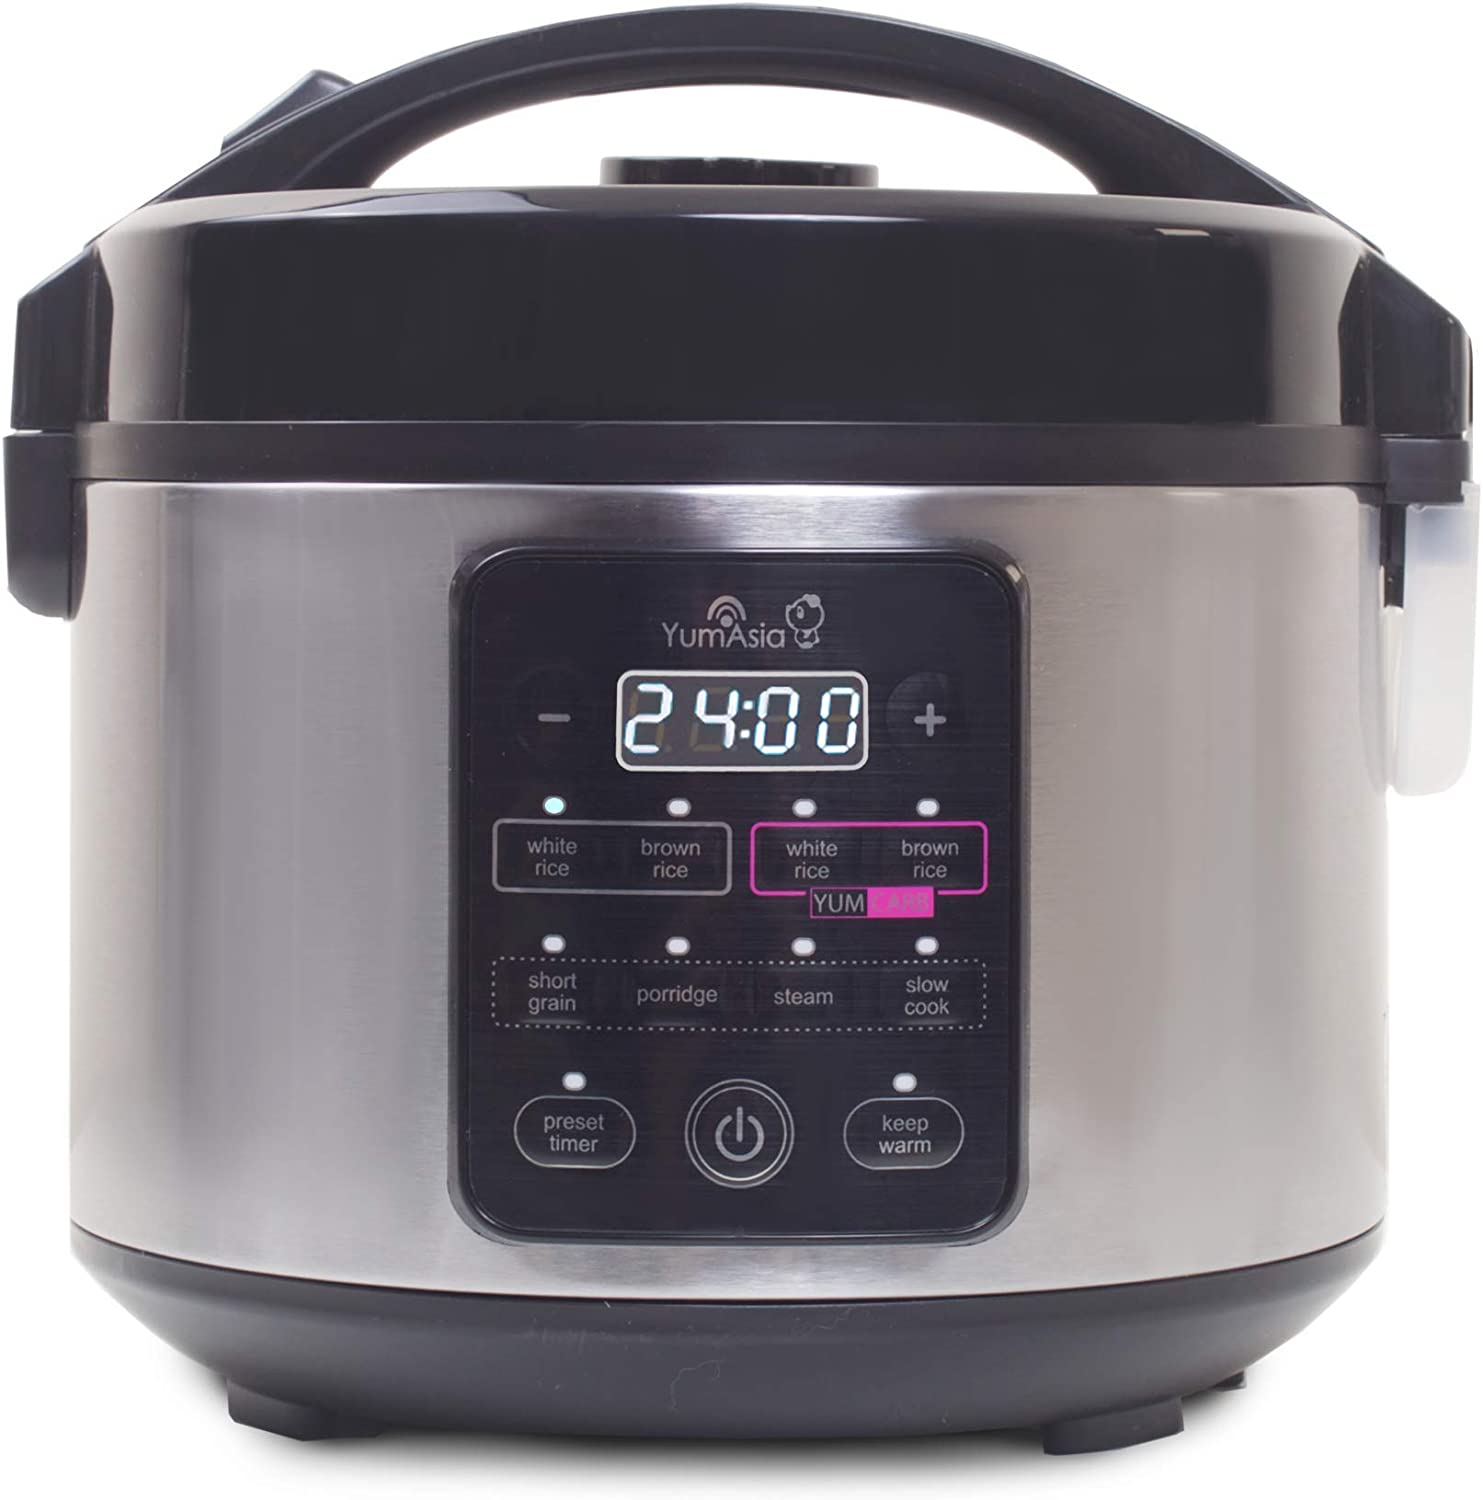 Yum Asia Kumo YumCarb Rice Cooker with Ceramic Bowl and Advanced Fuzzy Logic, (5.5 Cups, 1 Litre), 5 Rice Cooking Functions, 3 Multicooker Functions, 220-240V UK/EU Power (Light Stainless Steel)